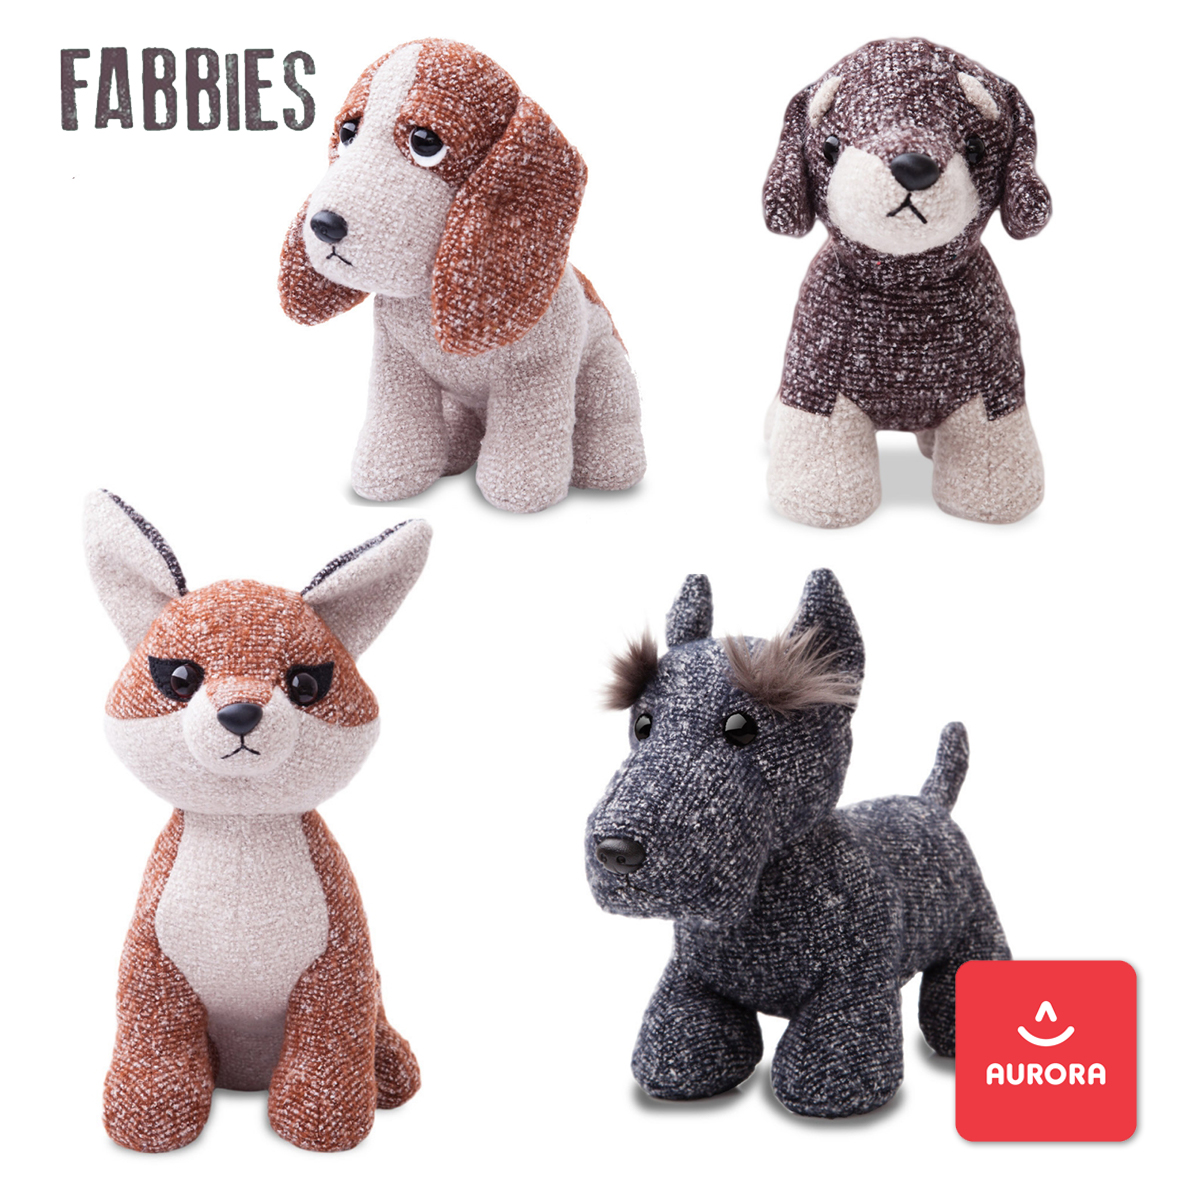 Fabbies soft toys from Aurora